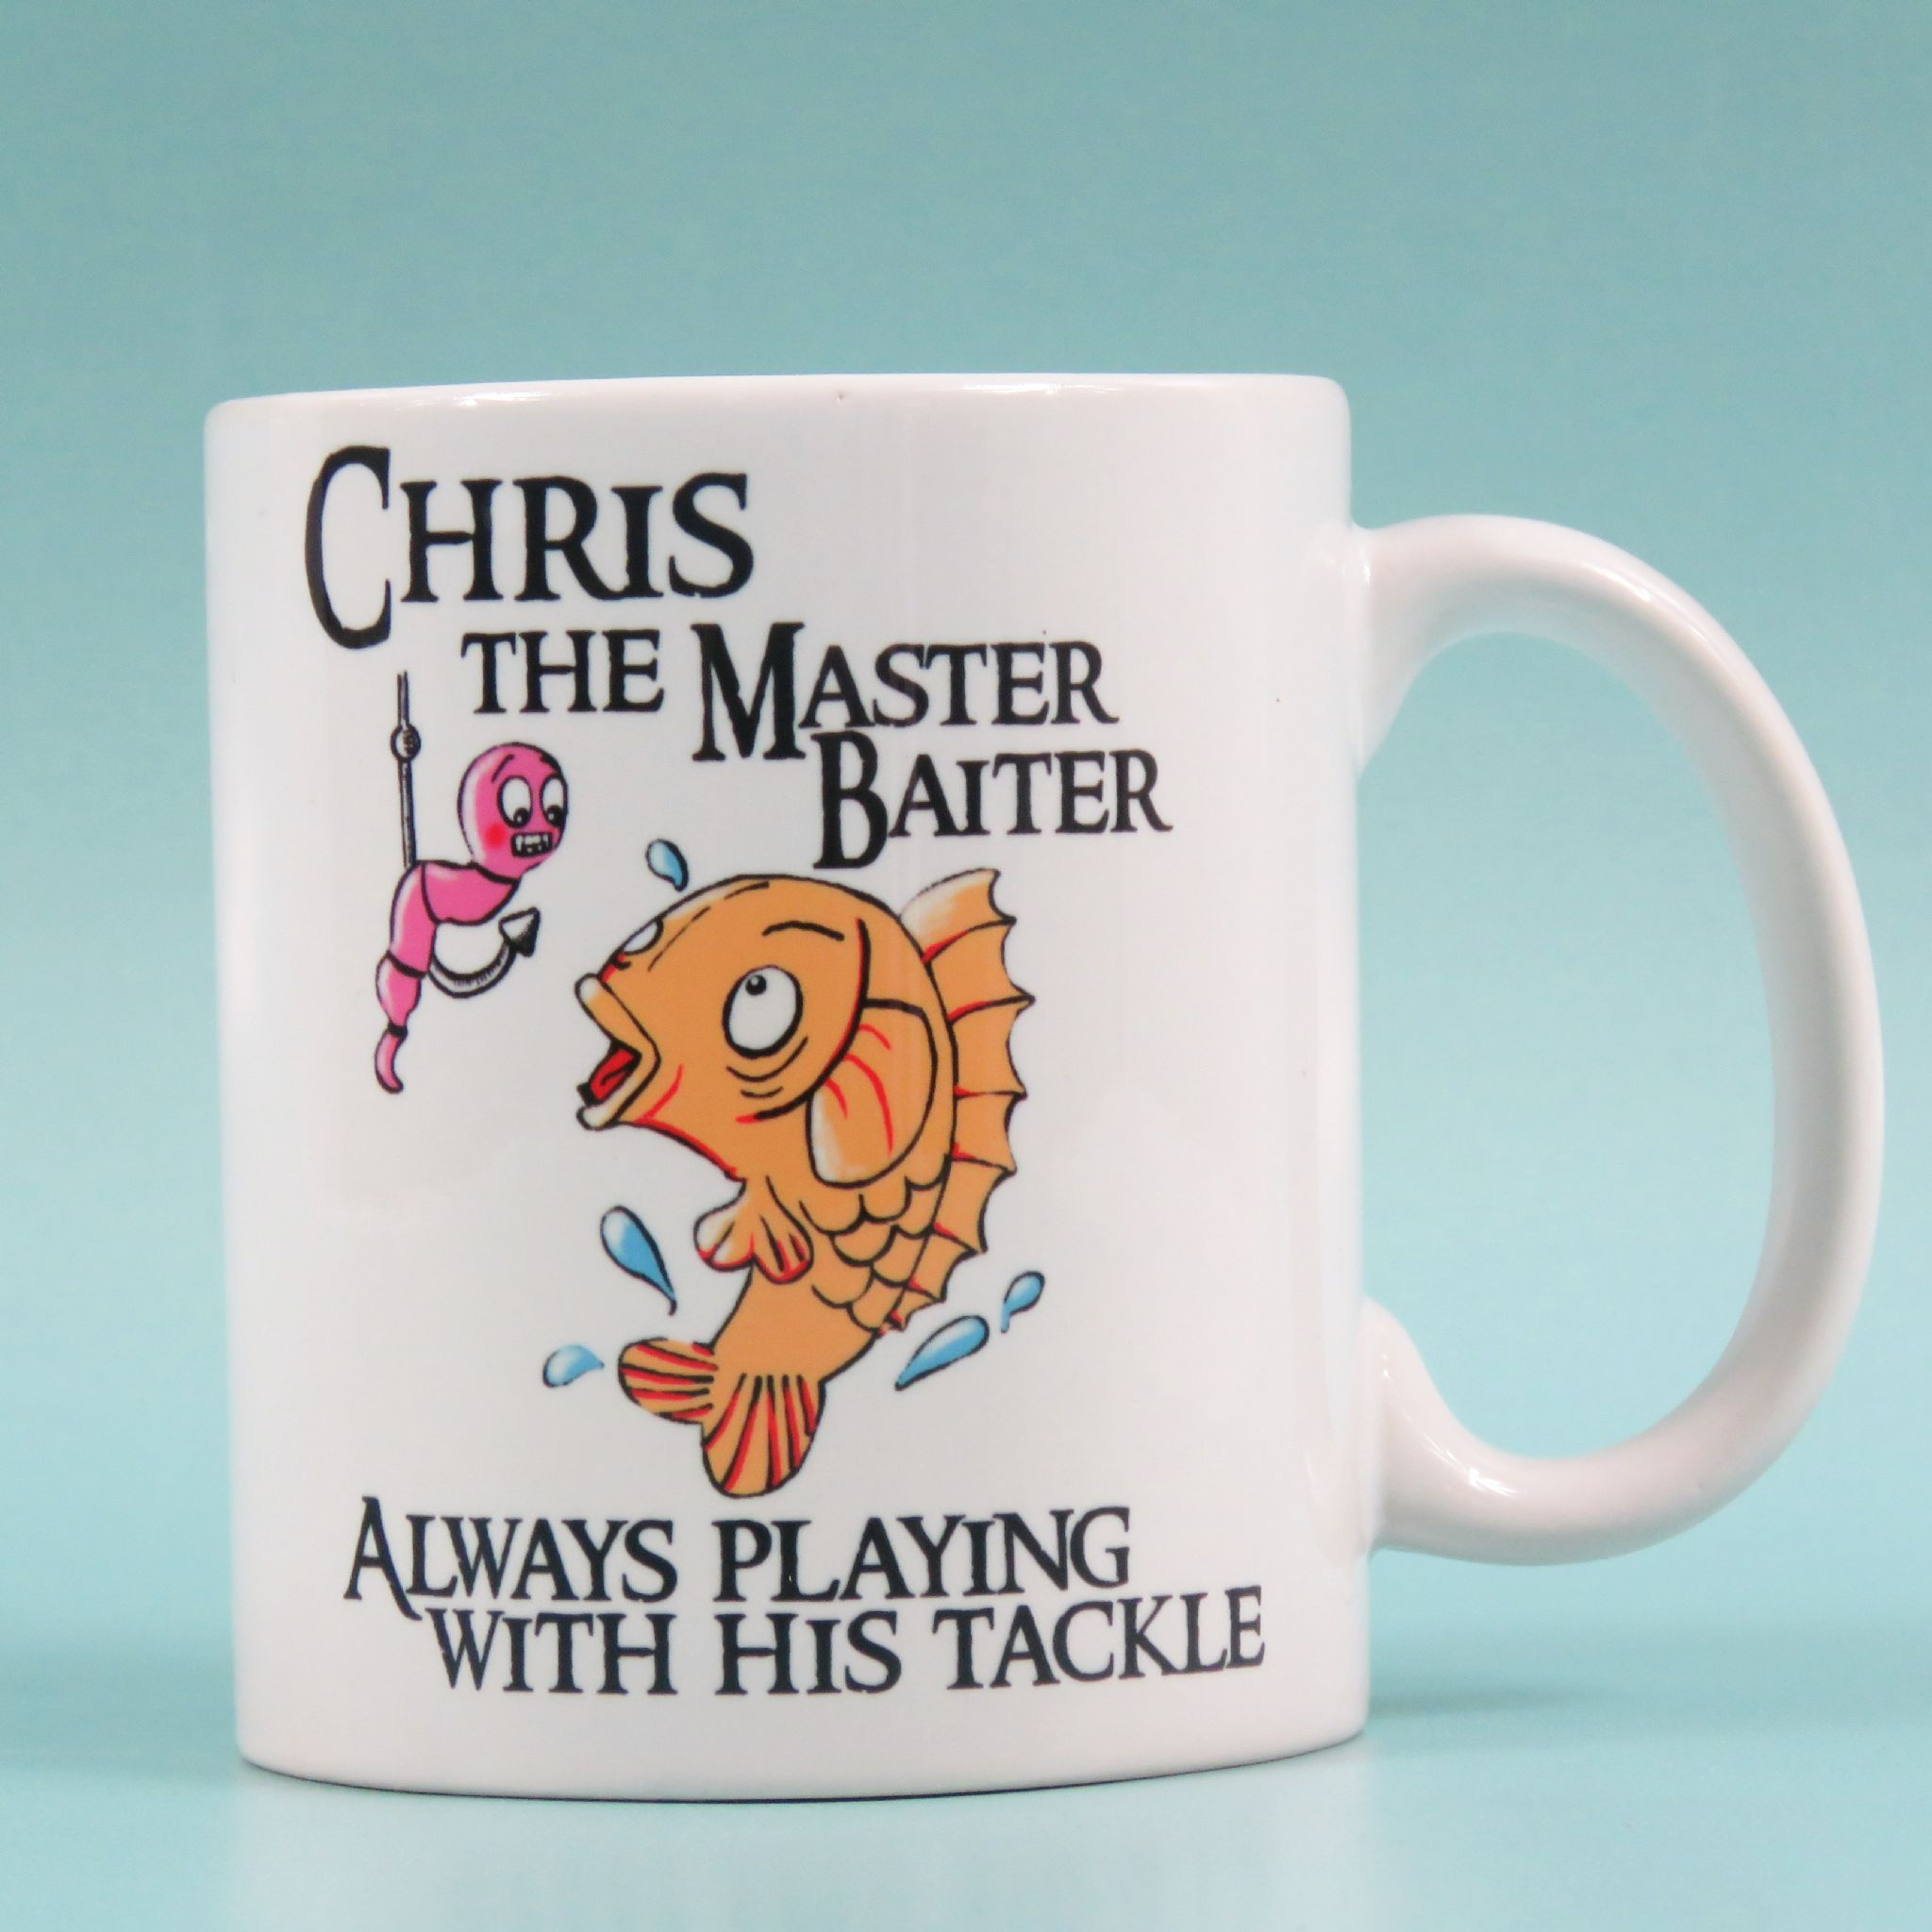 Master Baiter Mug Funny Fishing Joke Playing With Tackle Gift For Him Fishing Gift Fisherman 5240 P likewise JRocTackle Fishing Rod Carry Storage BAG Protective Case Accessory Bag Washable likewise Pelagic Fish Storage Bag moreover Latest News From Rutland And Grafham furthermore Polyform Windy Buoys. on fishing tackle shops